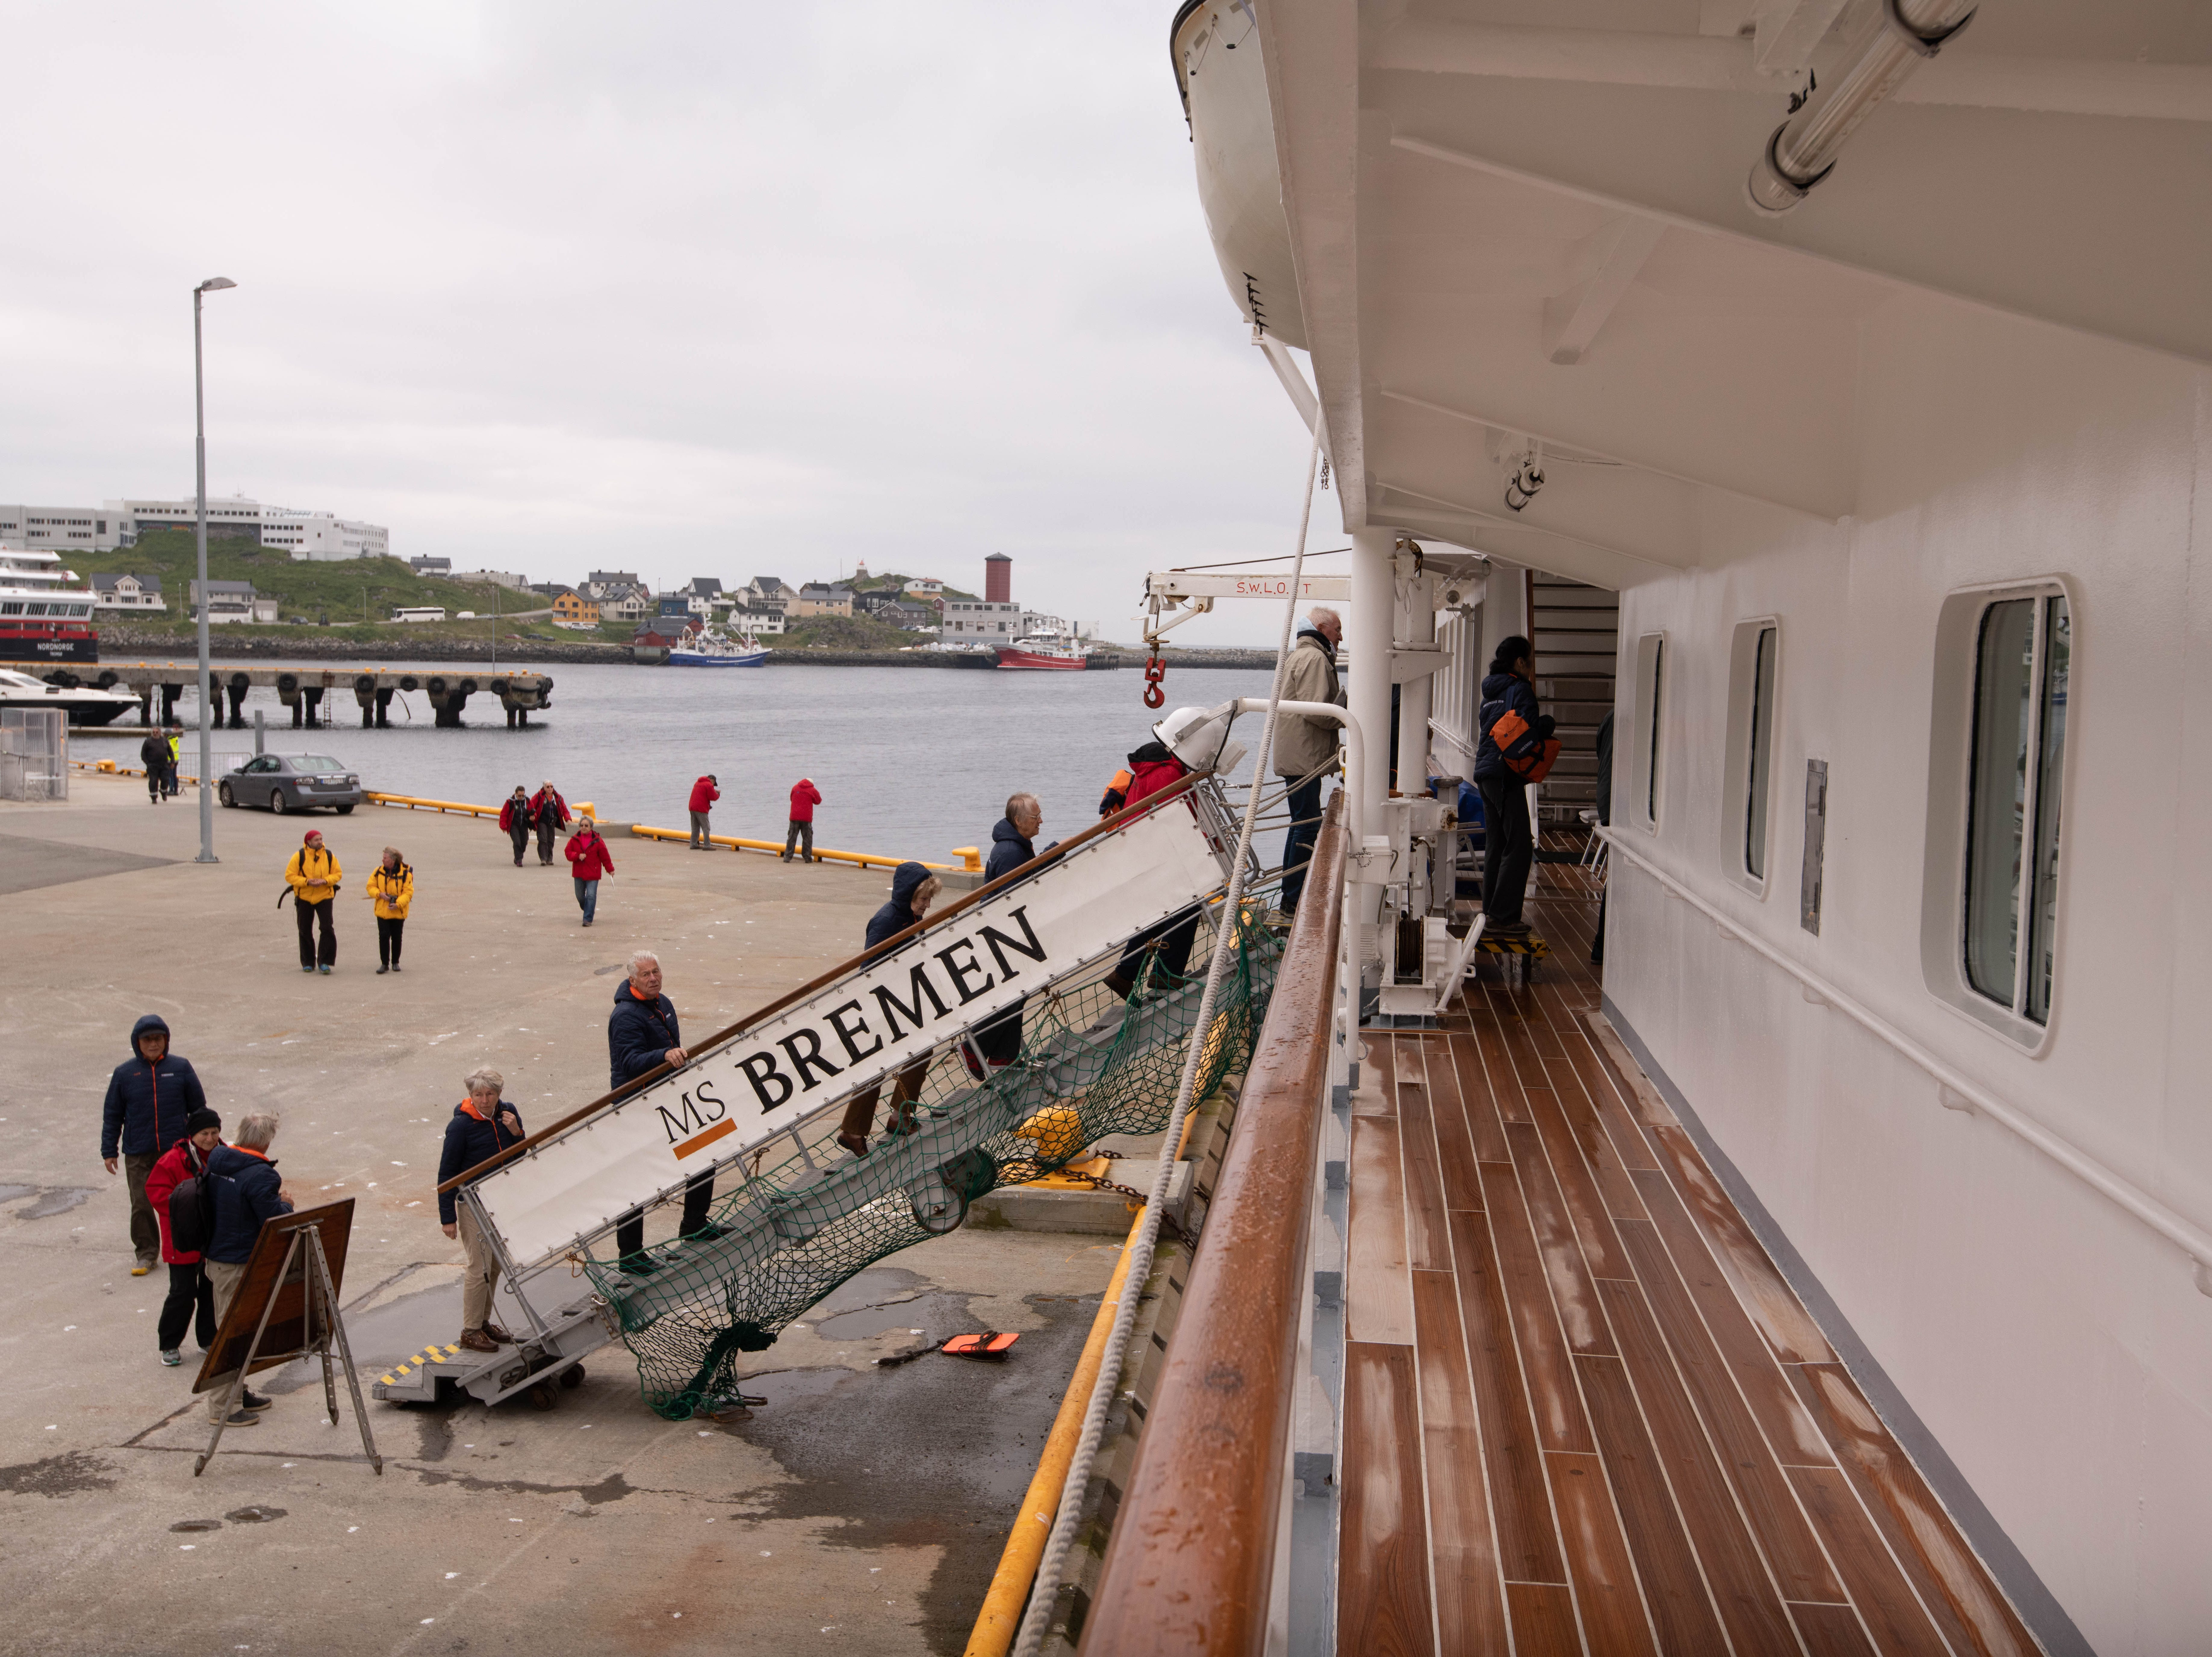 Passengers board Bremen via a ramp that travels with the ship. It's lowered into place by a crane at the top of the vessel that also is used to lower Zodiac boats used for landings.